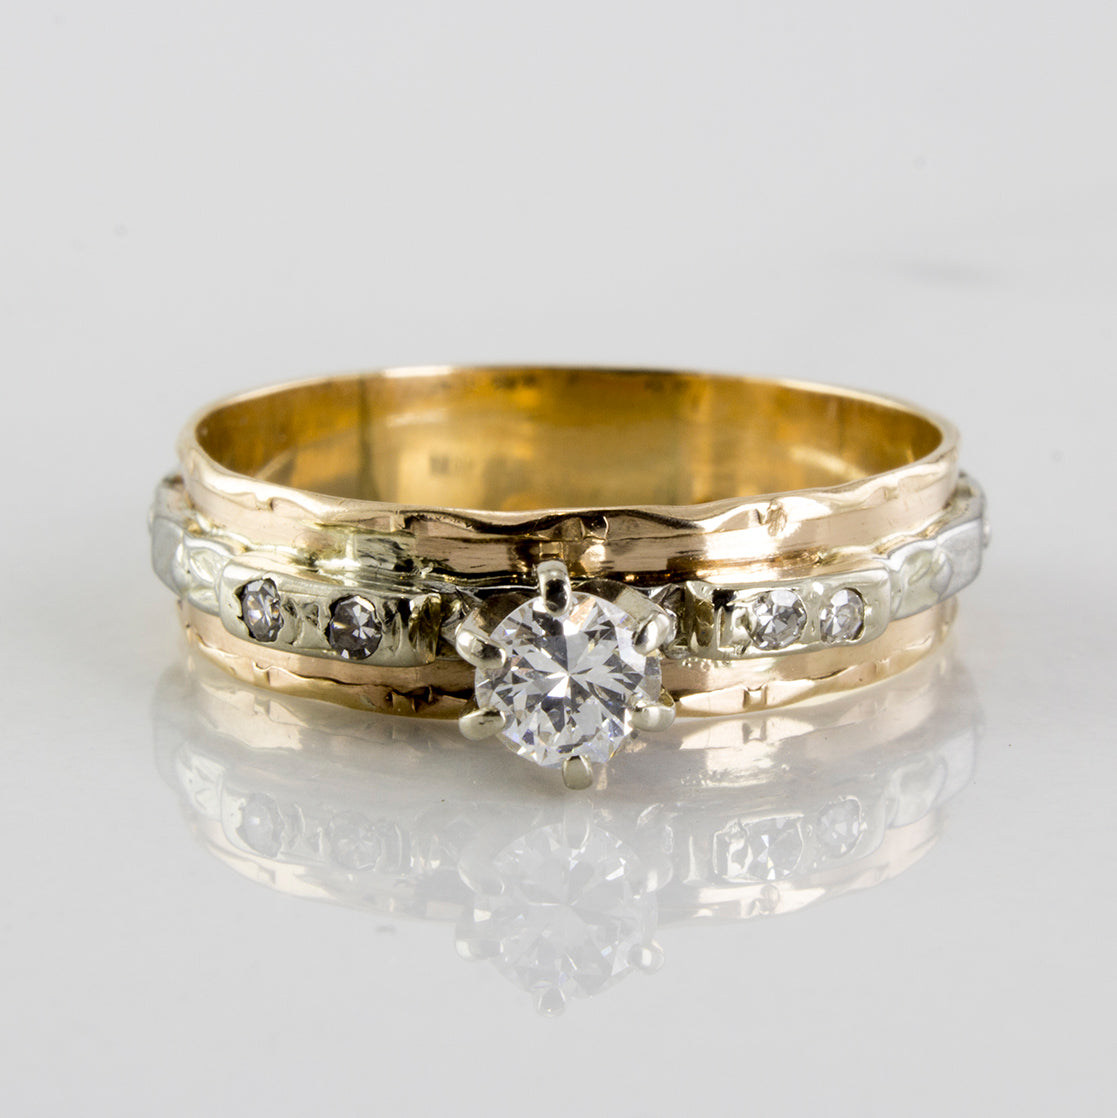 Textured Retro Solitaire Diamond Ring | 0.20 ctw | SZ 7 |